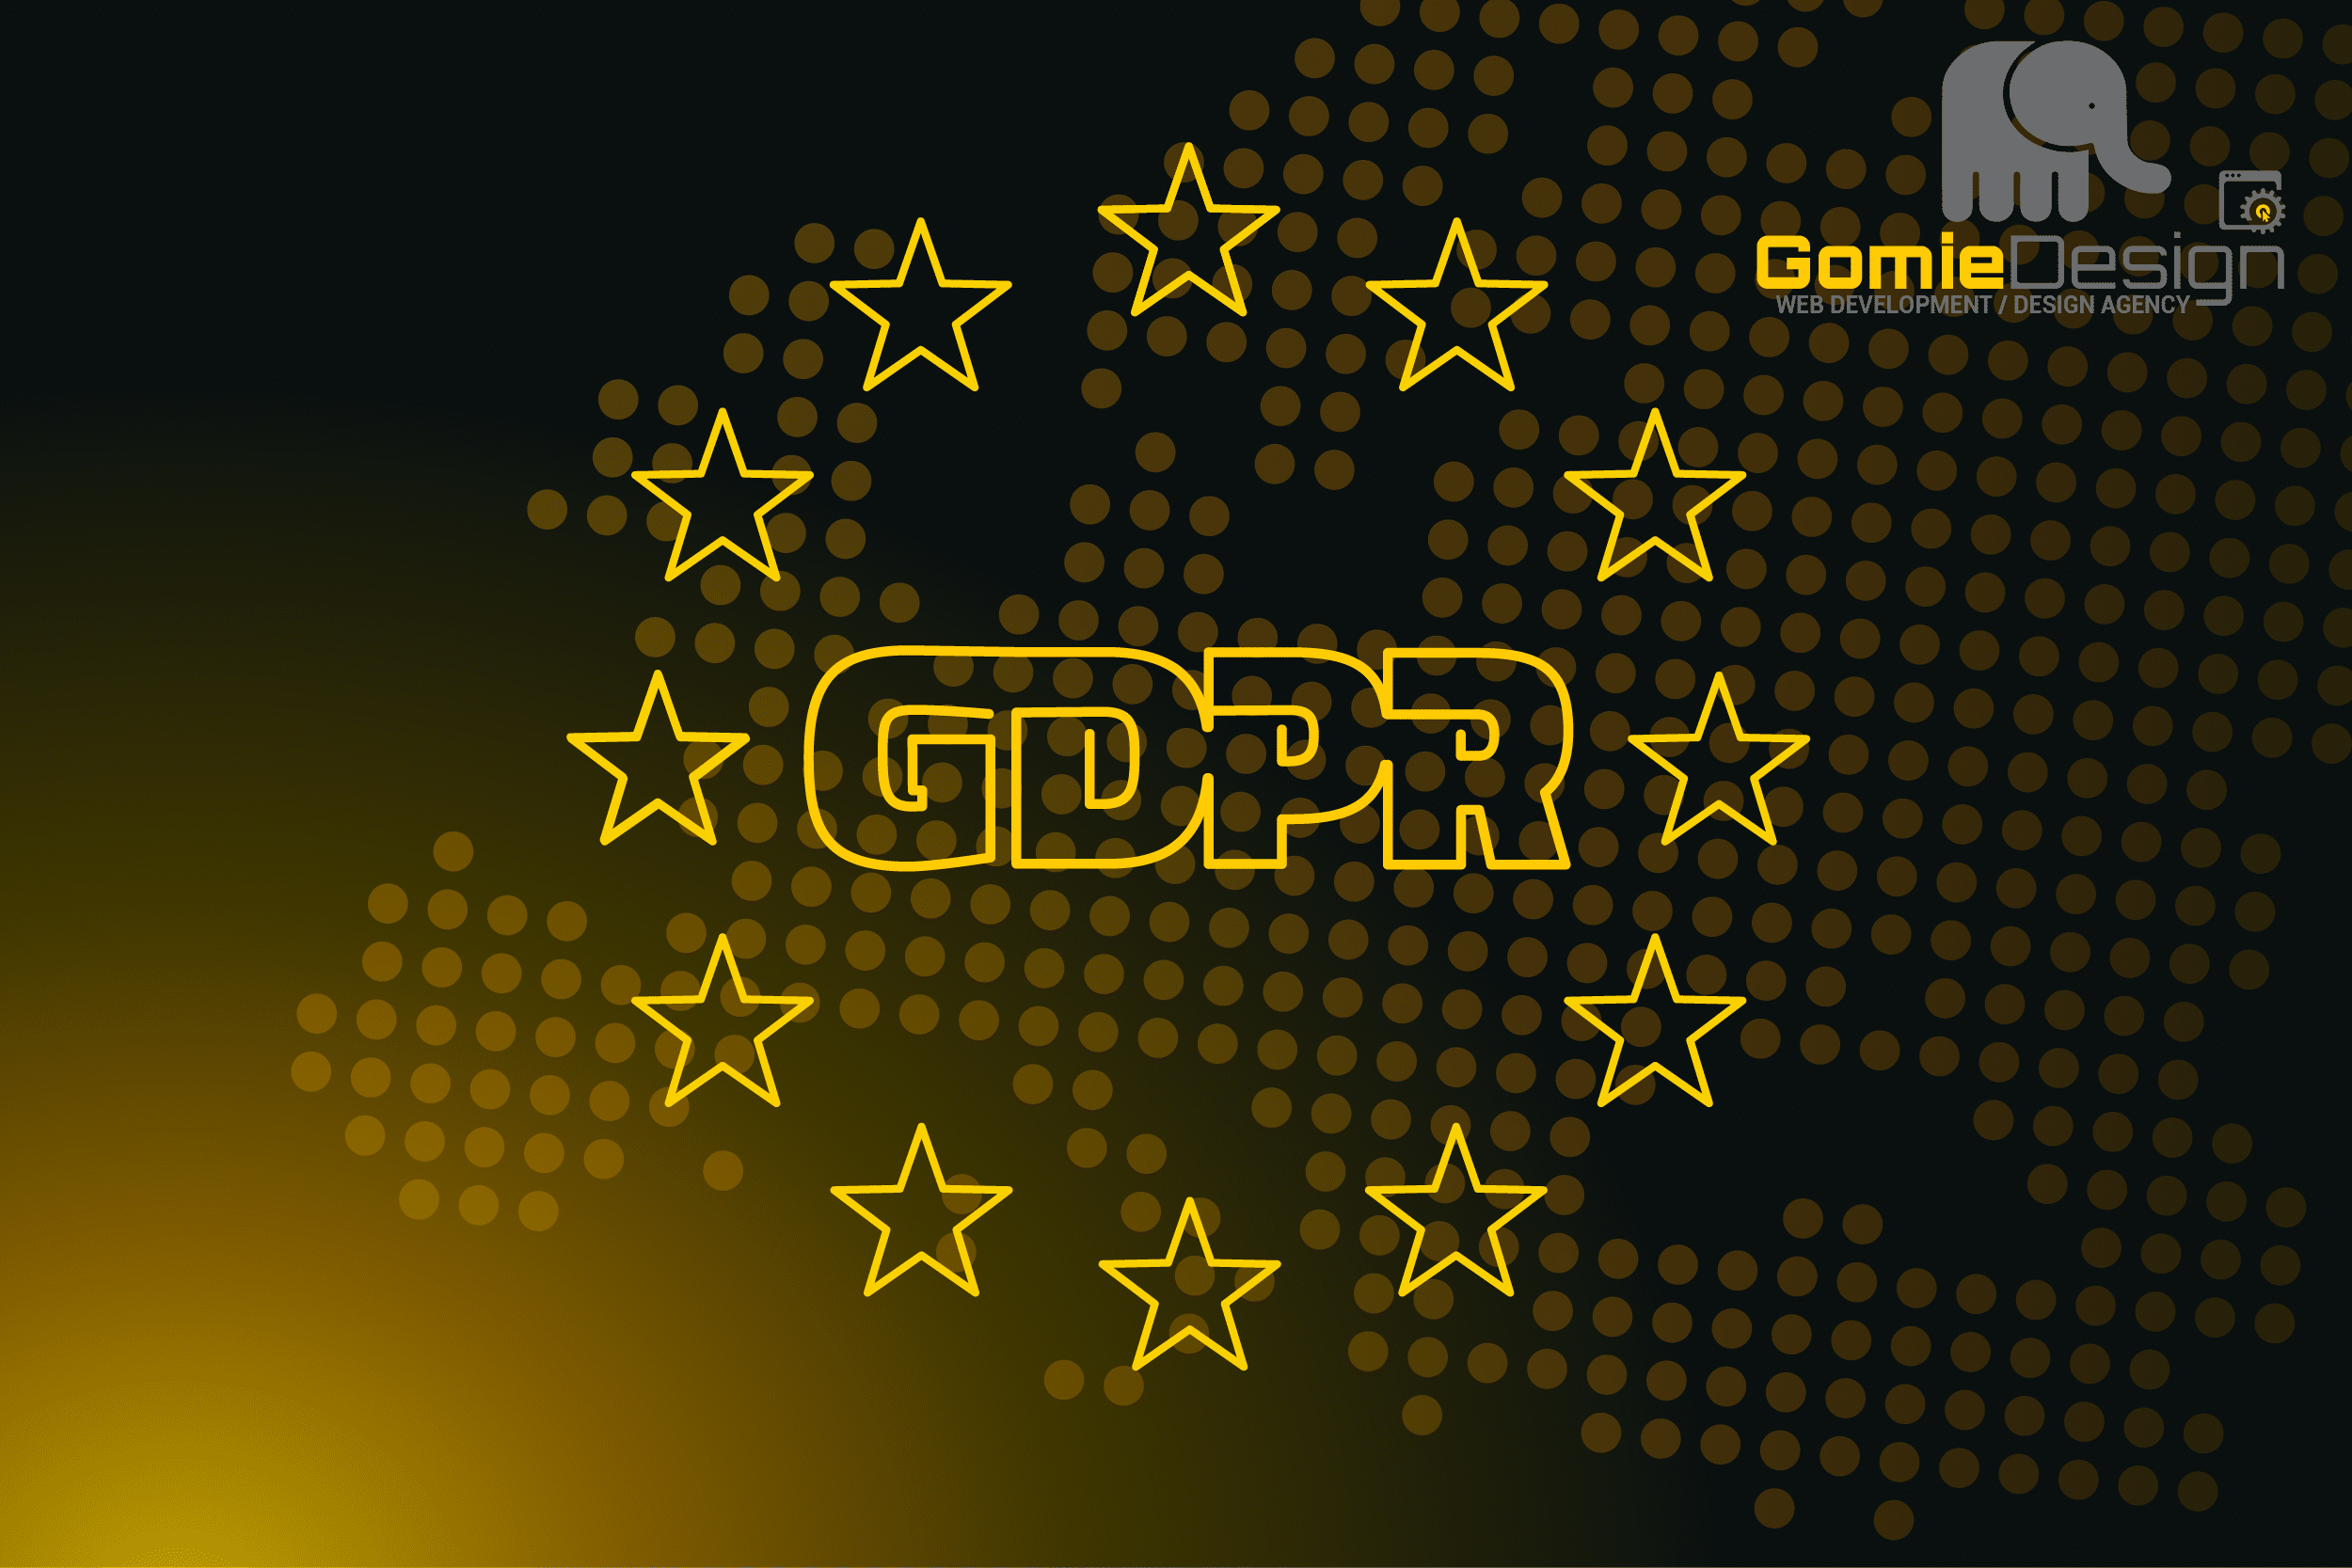 Top Ways to Make Your Website GDPR Compliant